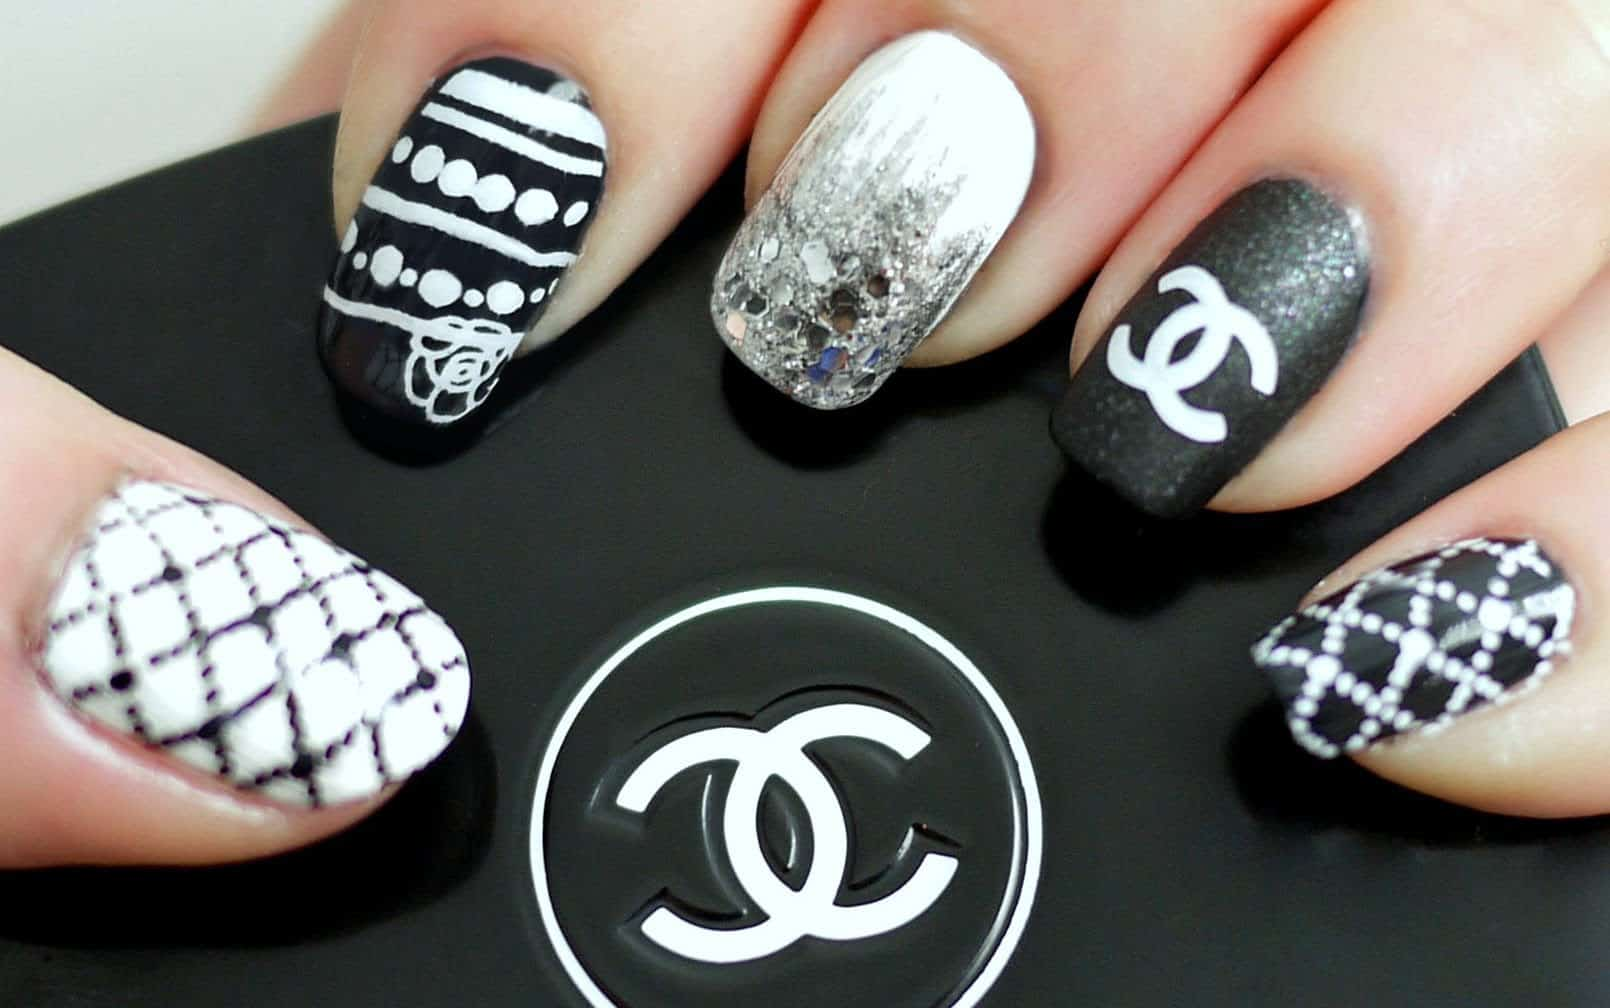 Chanel inspired monochrome nails